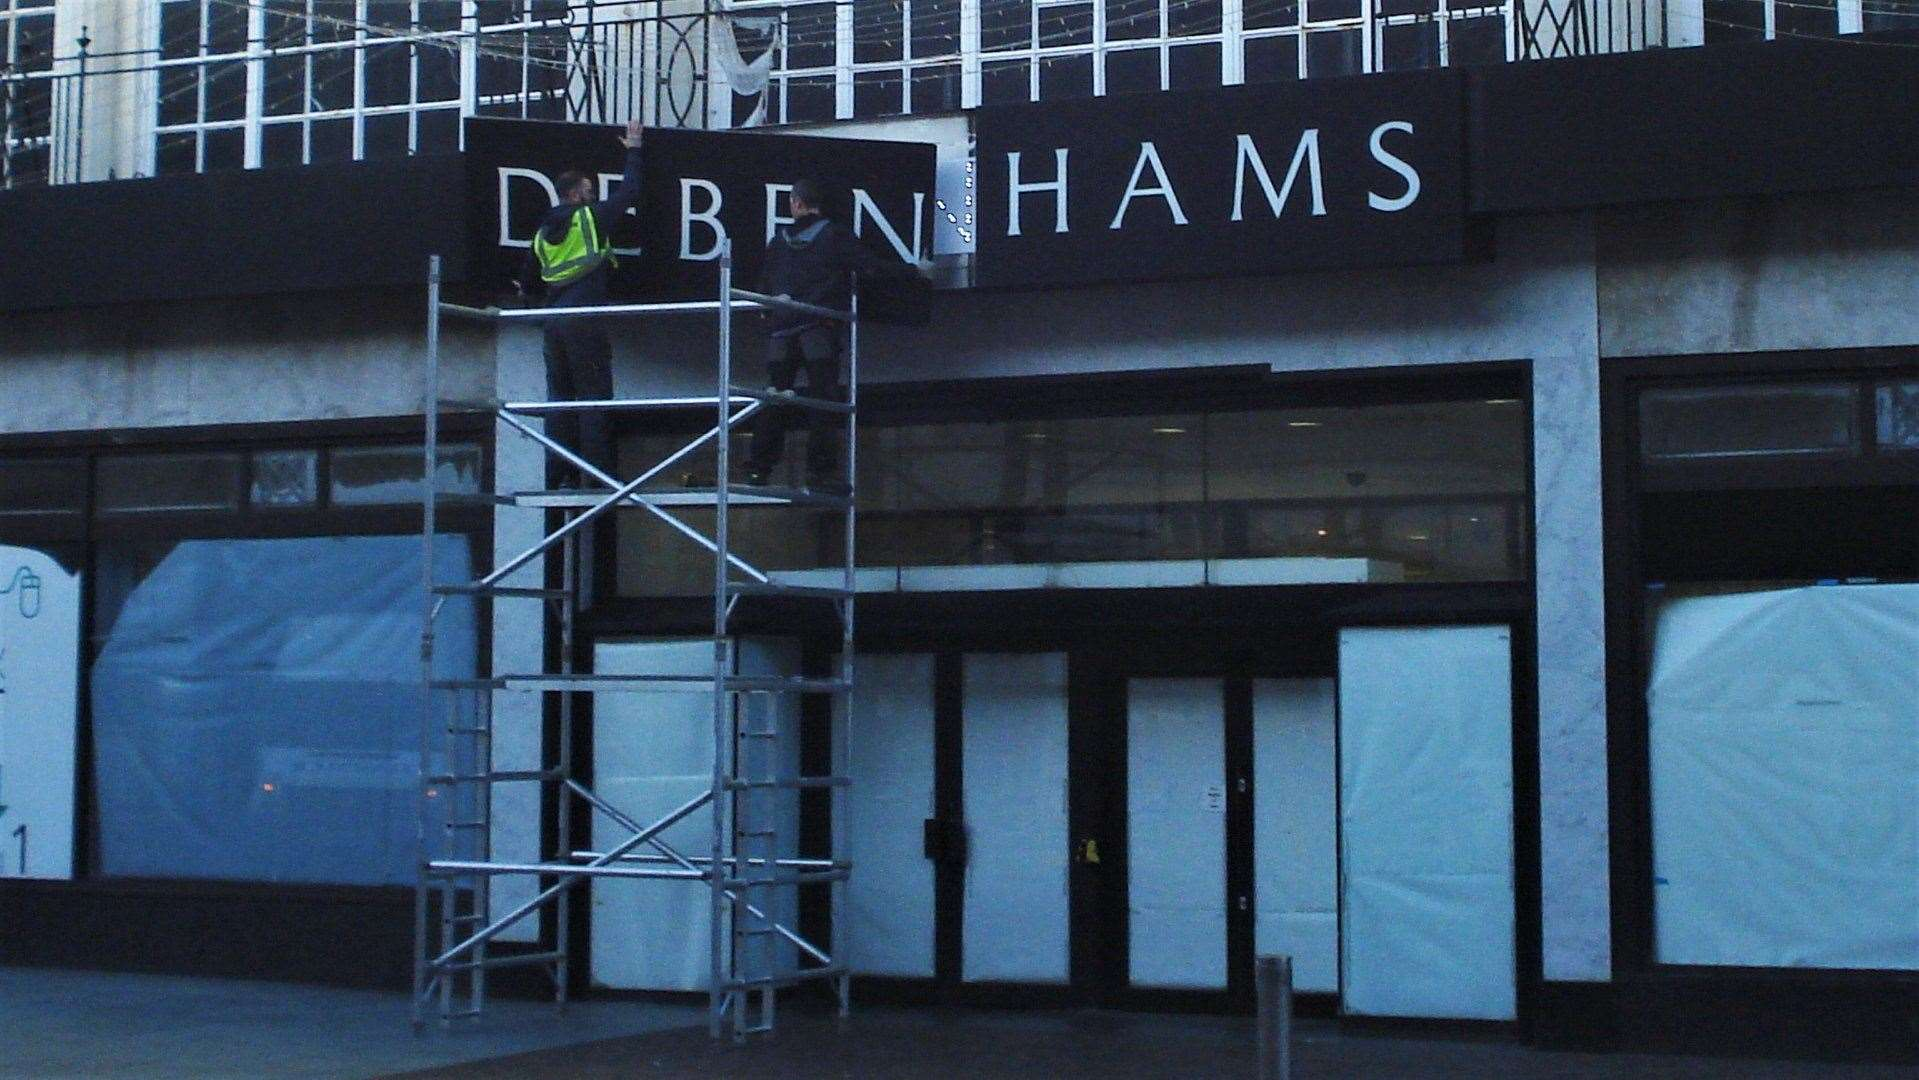 Workers remove the Debenhams sign at the Folkestone store, which closed on Sunday. Picture credit: Legends of Folkestone Facebook page